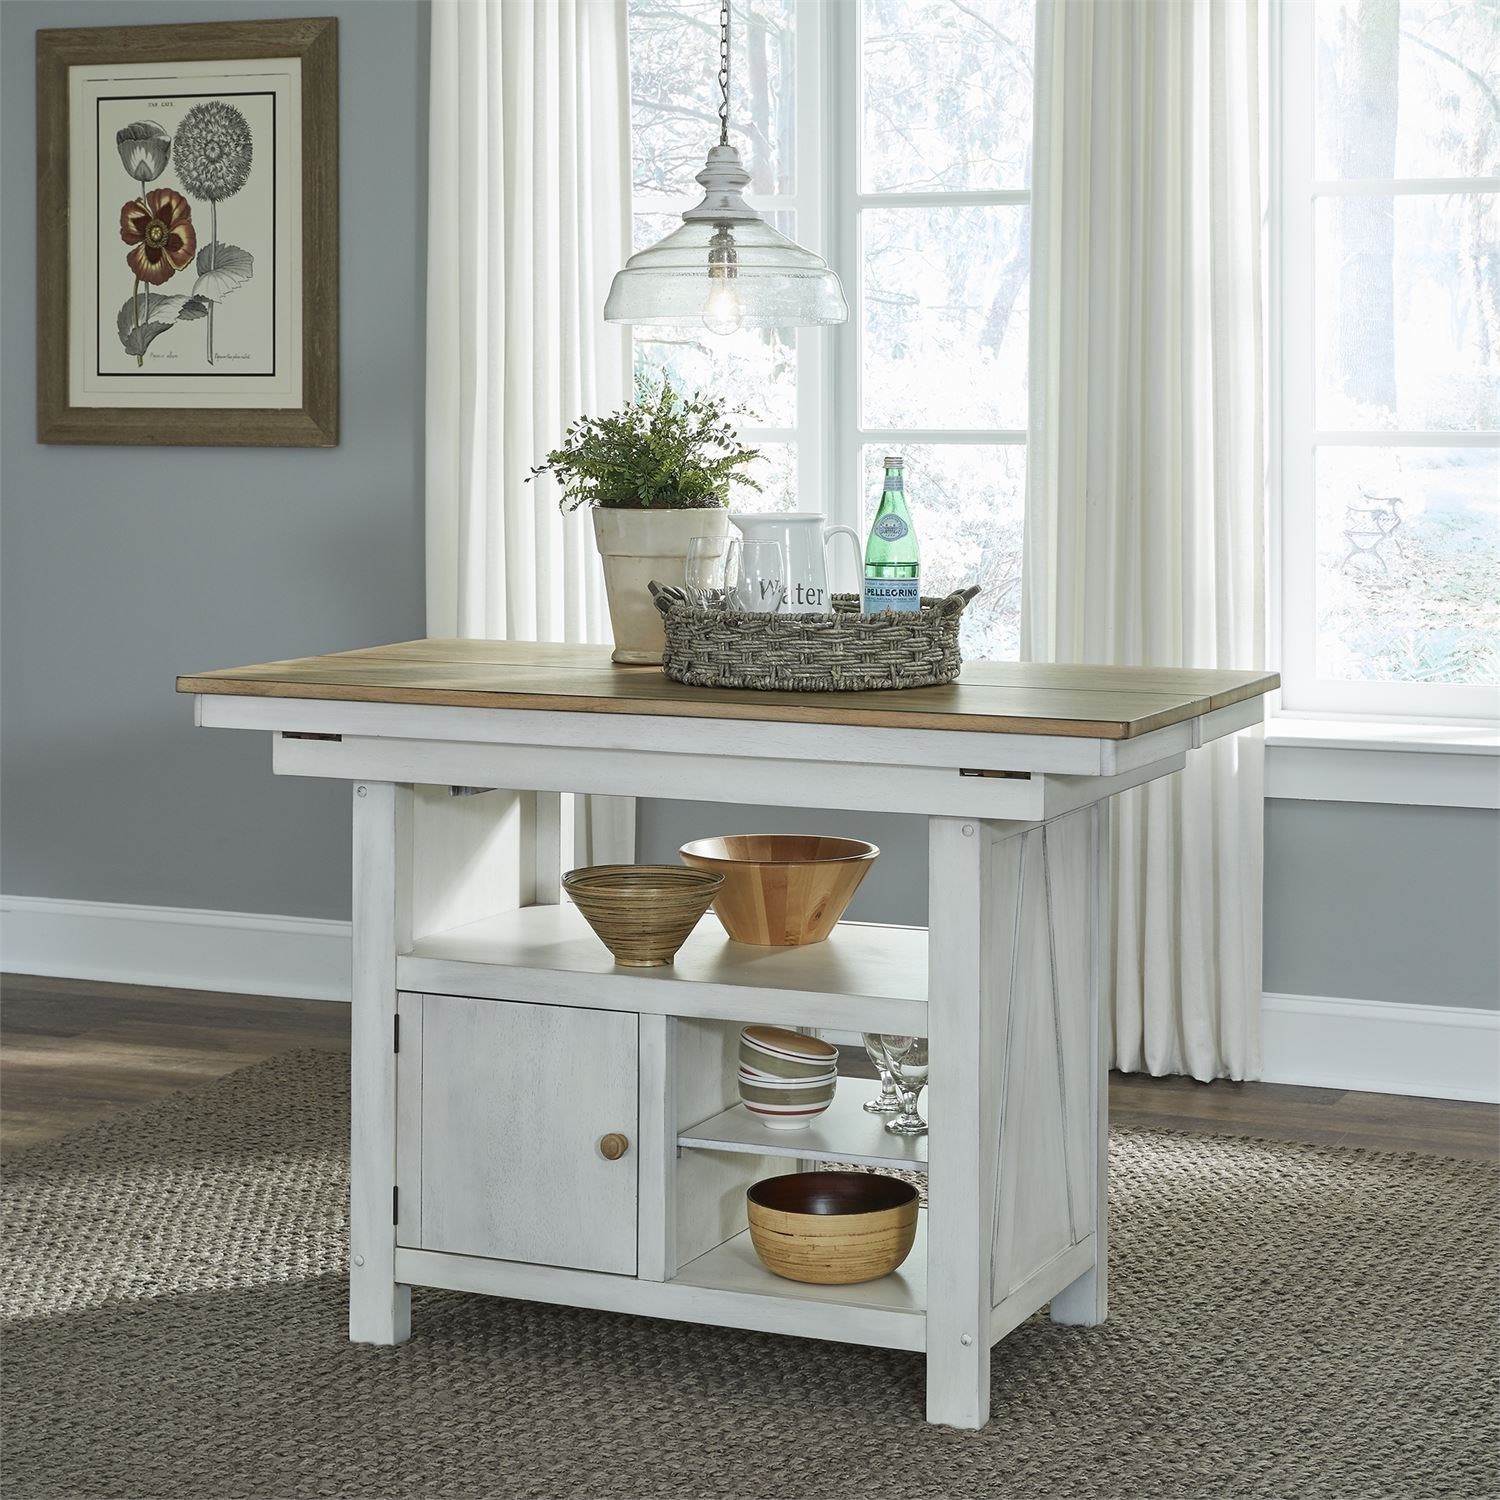 Transitional Two-Toned Kitchen Island with Butterfly Leaf